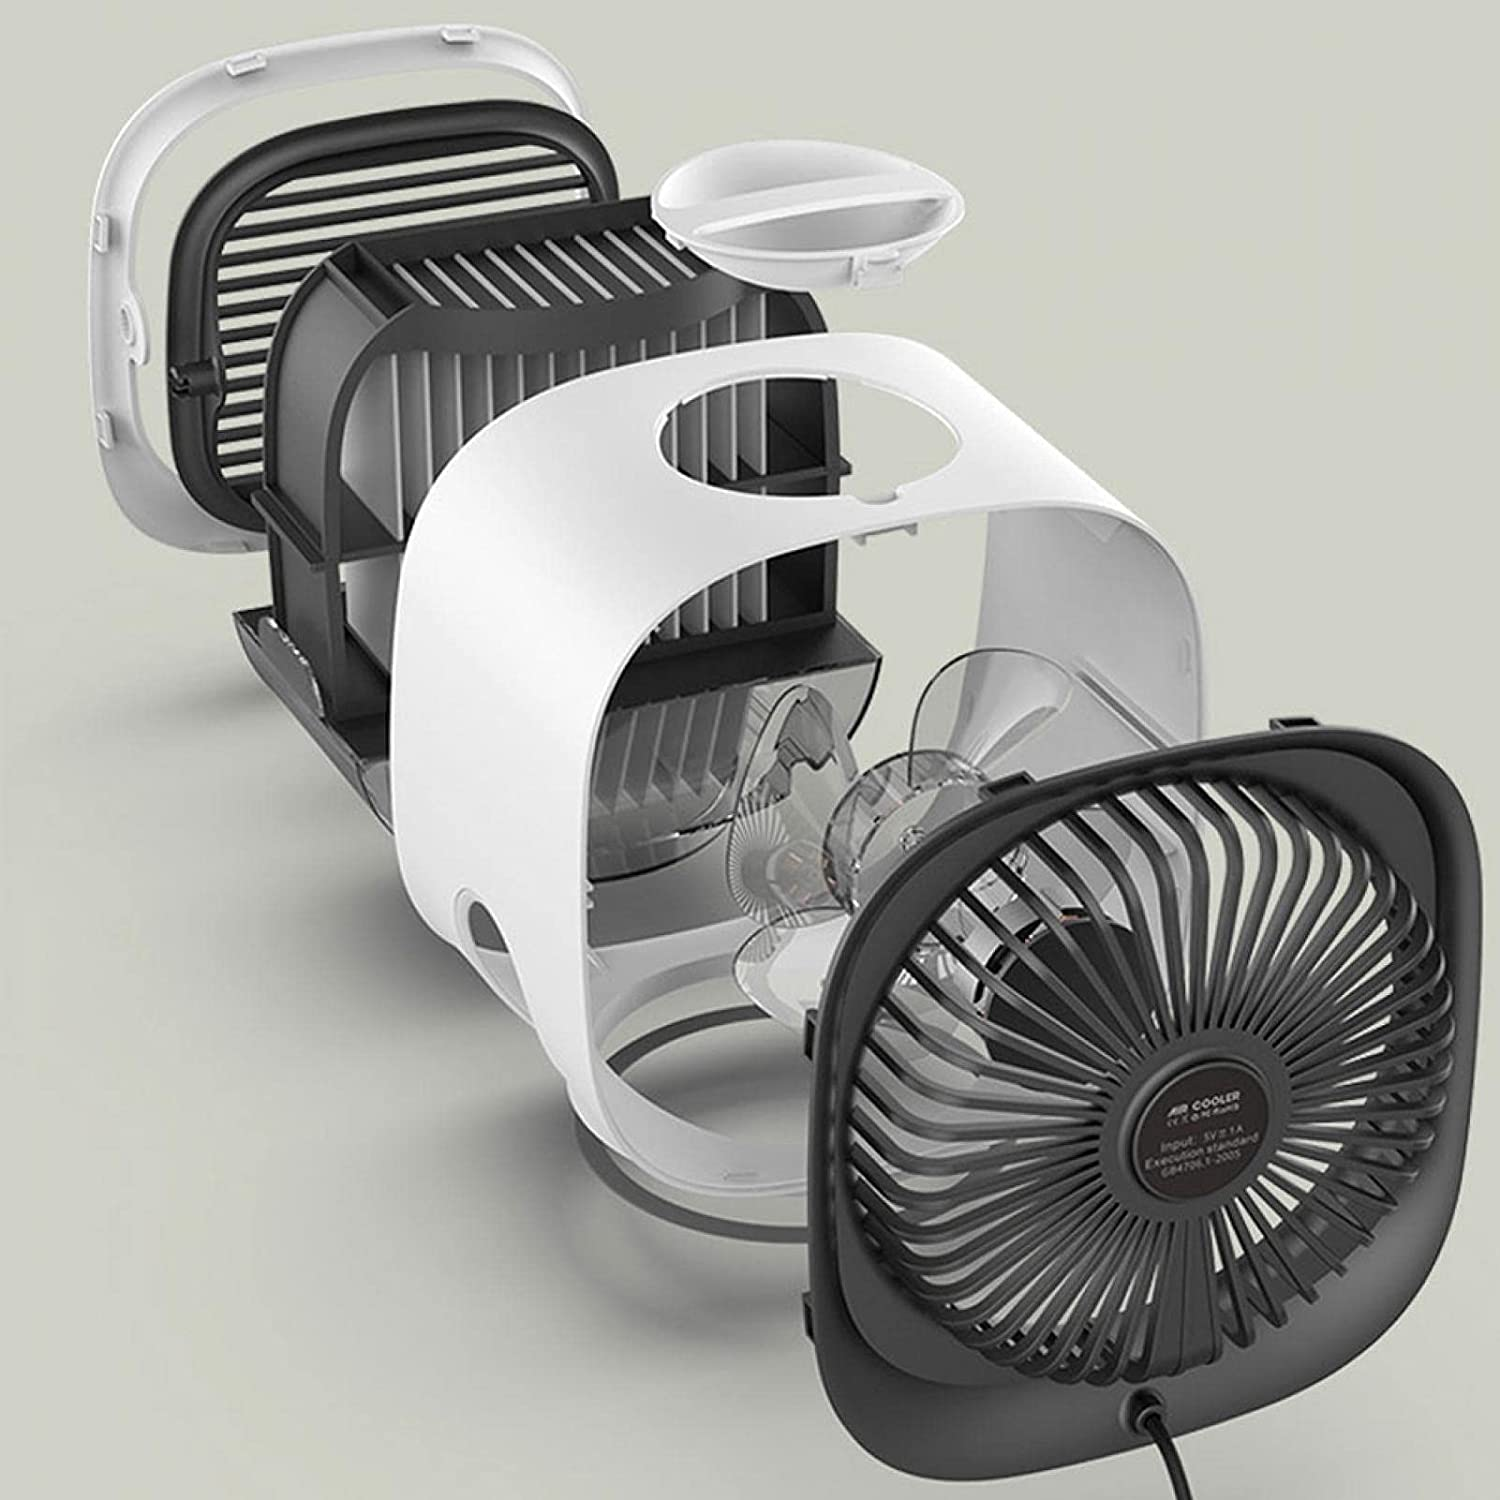 Large special price !! Air Conditioning Fan fo USB Cooler